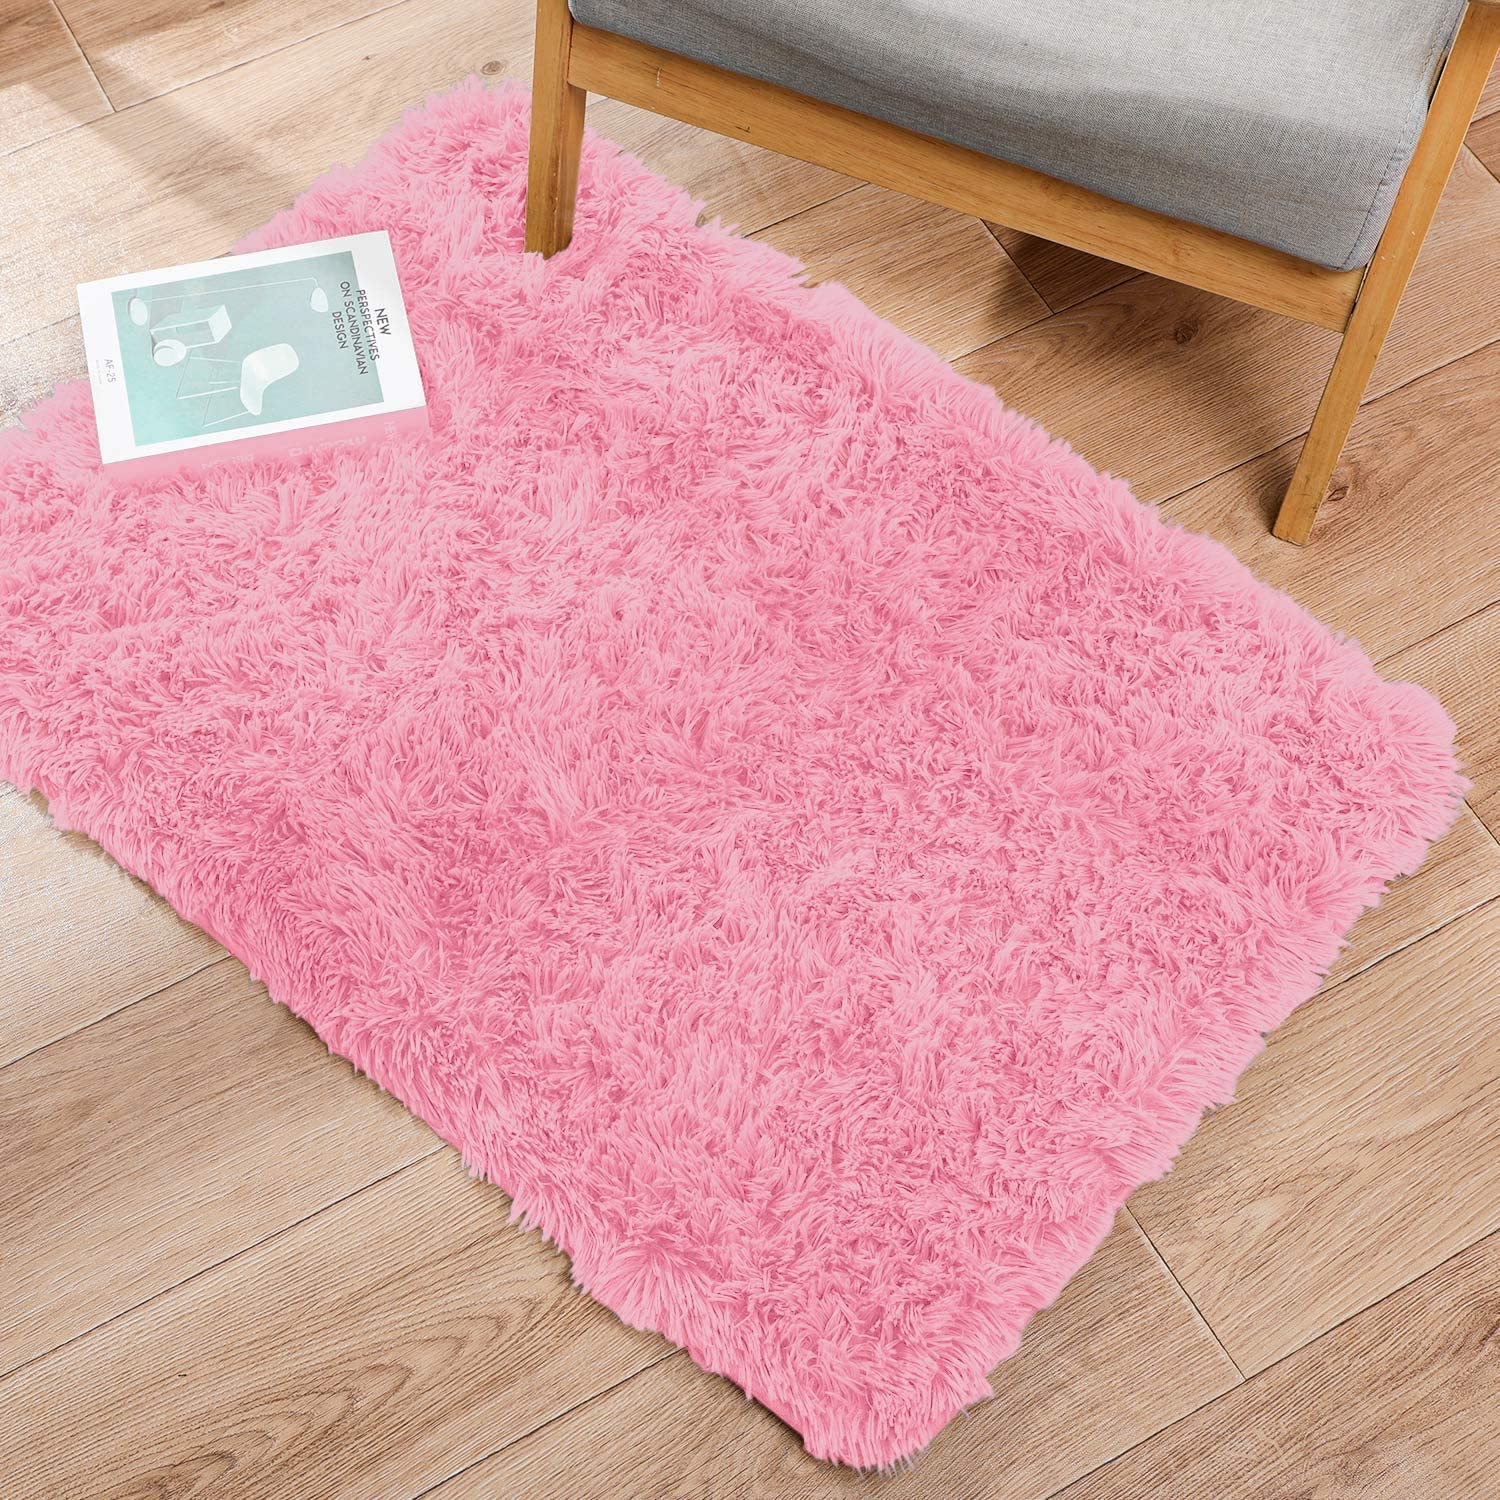 Ophanie Ultra Soft Fluffy Area Rugs for Bedroom, Luxury Shag Rug Faux Fur Non-Slip Floor Carpet for Kids Room, Baby Room, Girls Room, Play Room, and Nursery - Modern Home Decor, 2x3 Feet Pink